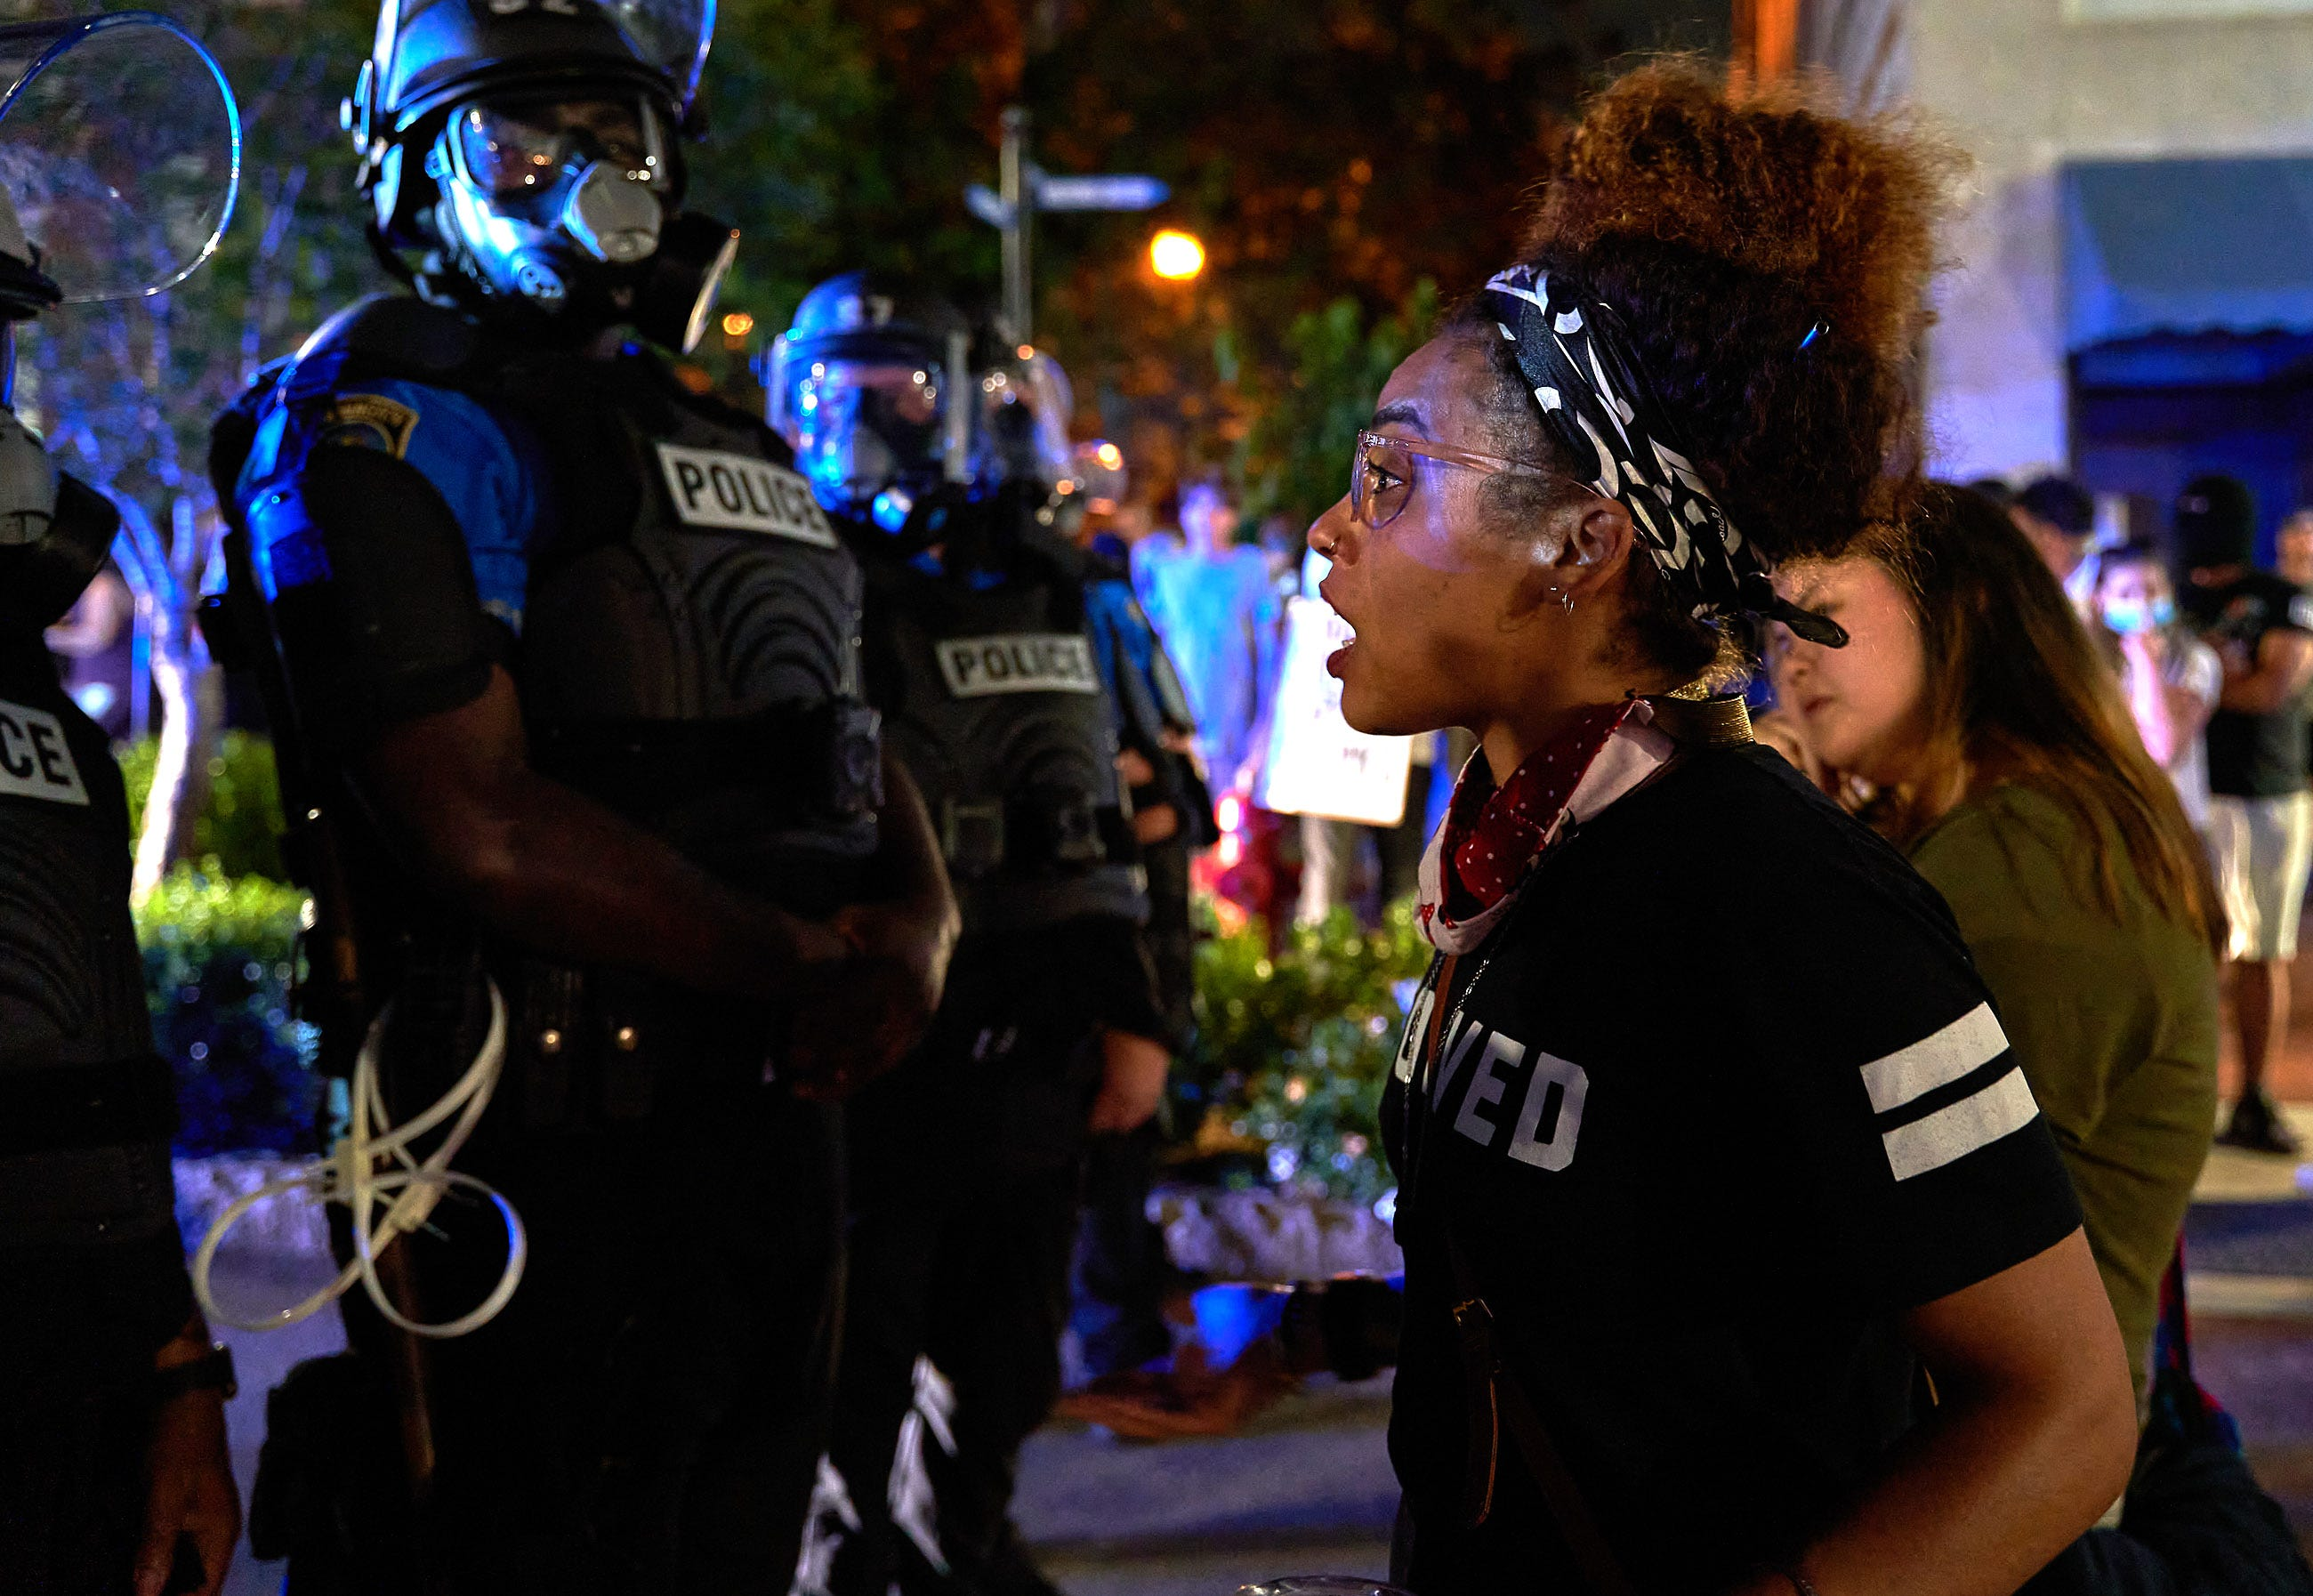 Lily Nicole talks with officers with the Wilmington Police Department during a confrontation between protesters and police in downtown Wilmington, N.C., Sunday, May 31, 2020. The protest turned confrontational as protesters and police clashed a day after a peaceful protest was held to show solidarity with George Floyd.